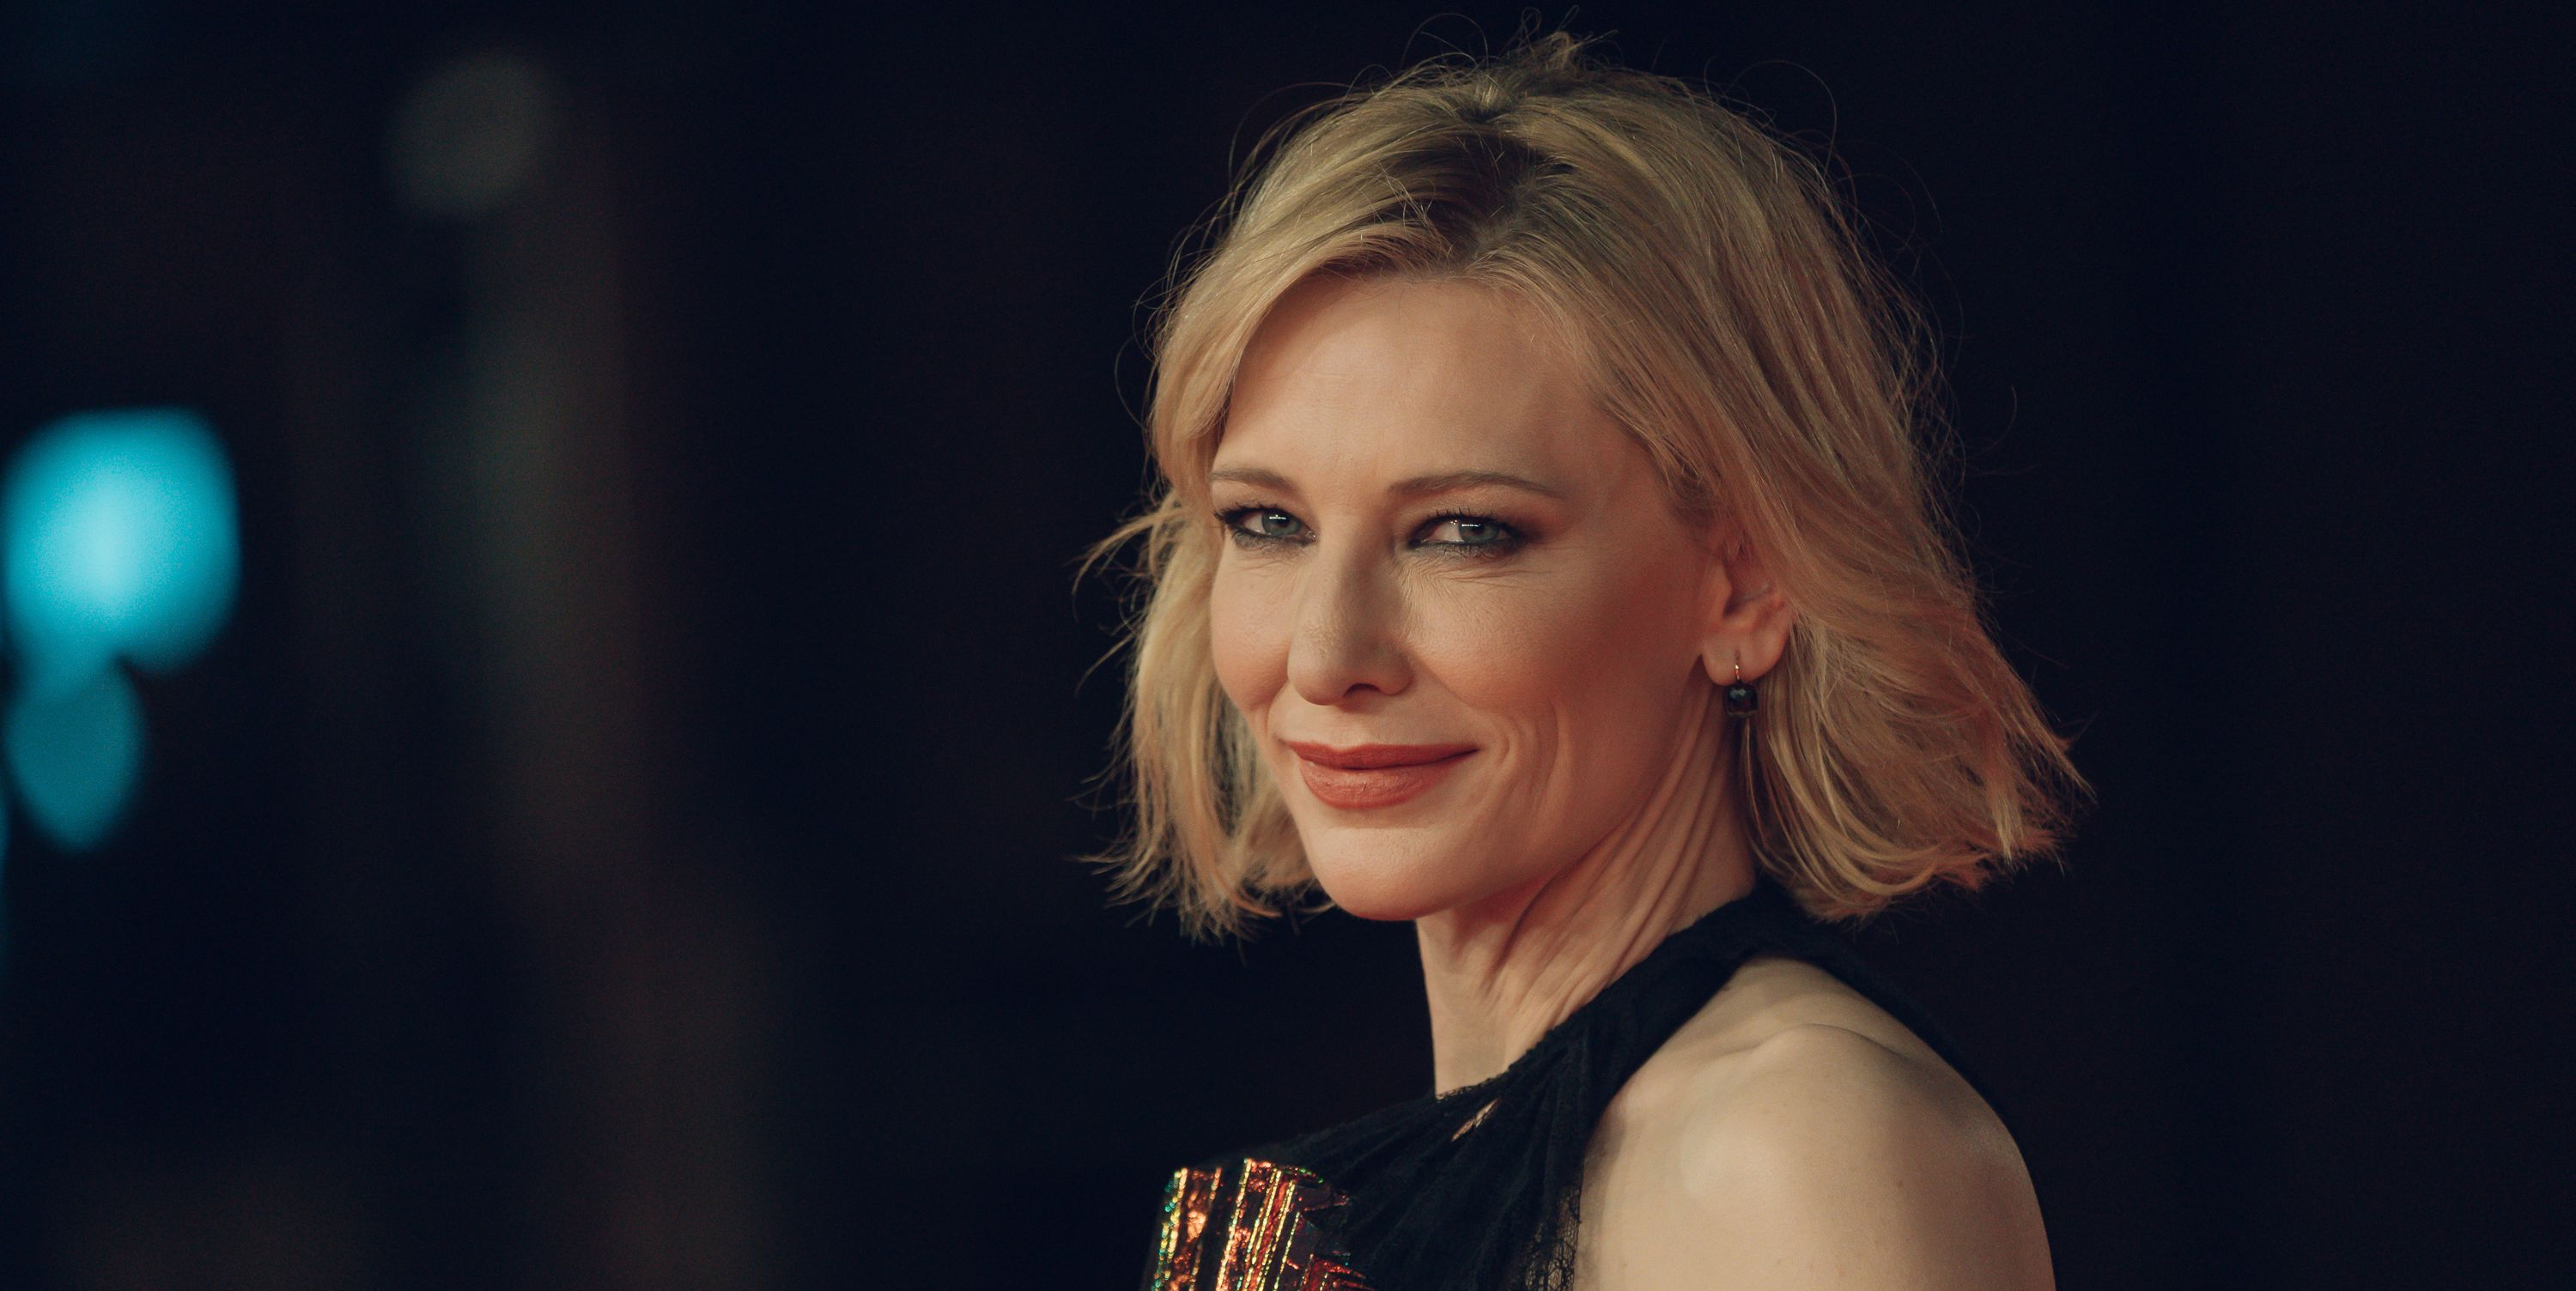 Cate Blanchett defends straight actors who play LGBT roles in film